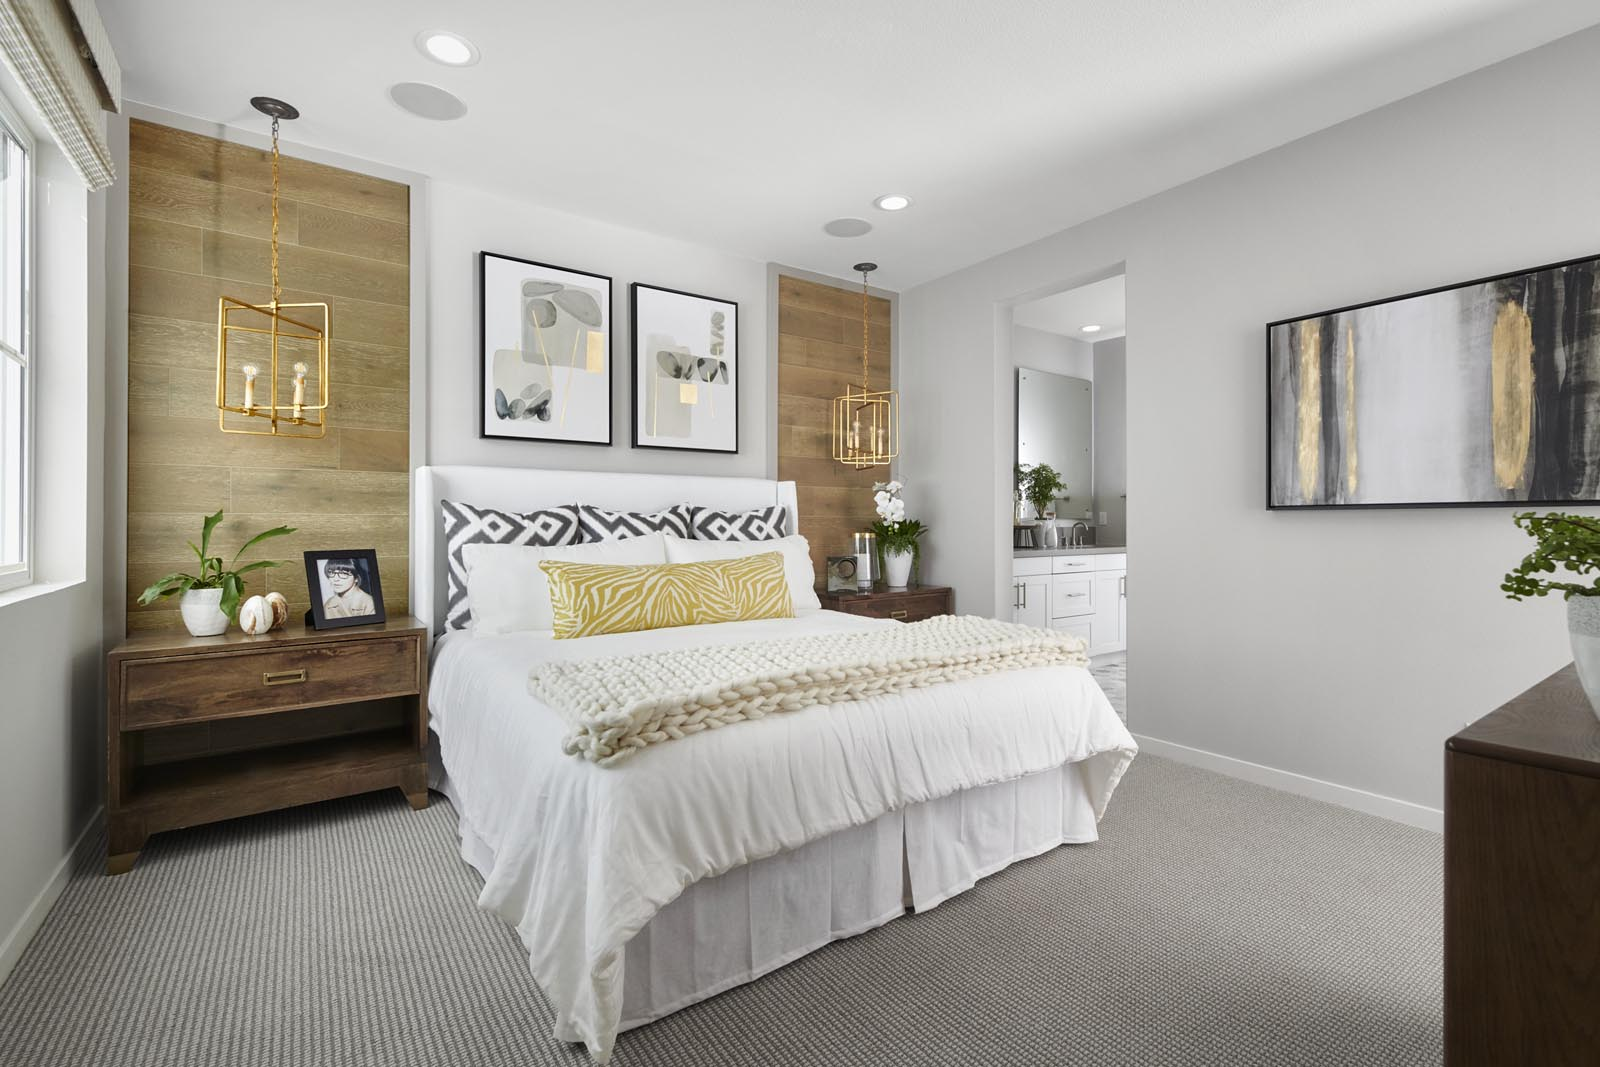 Master Bedroom   Residence 3   Tempo   New Homes in Rancho Cucamonga, CA   Tri Pointe Homes